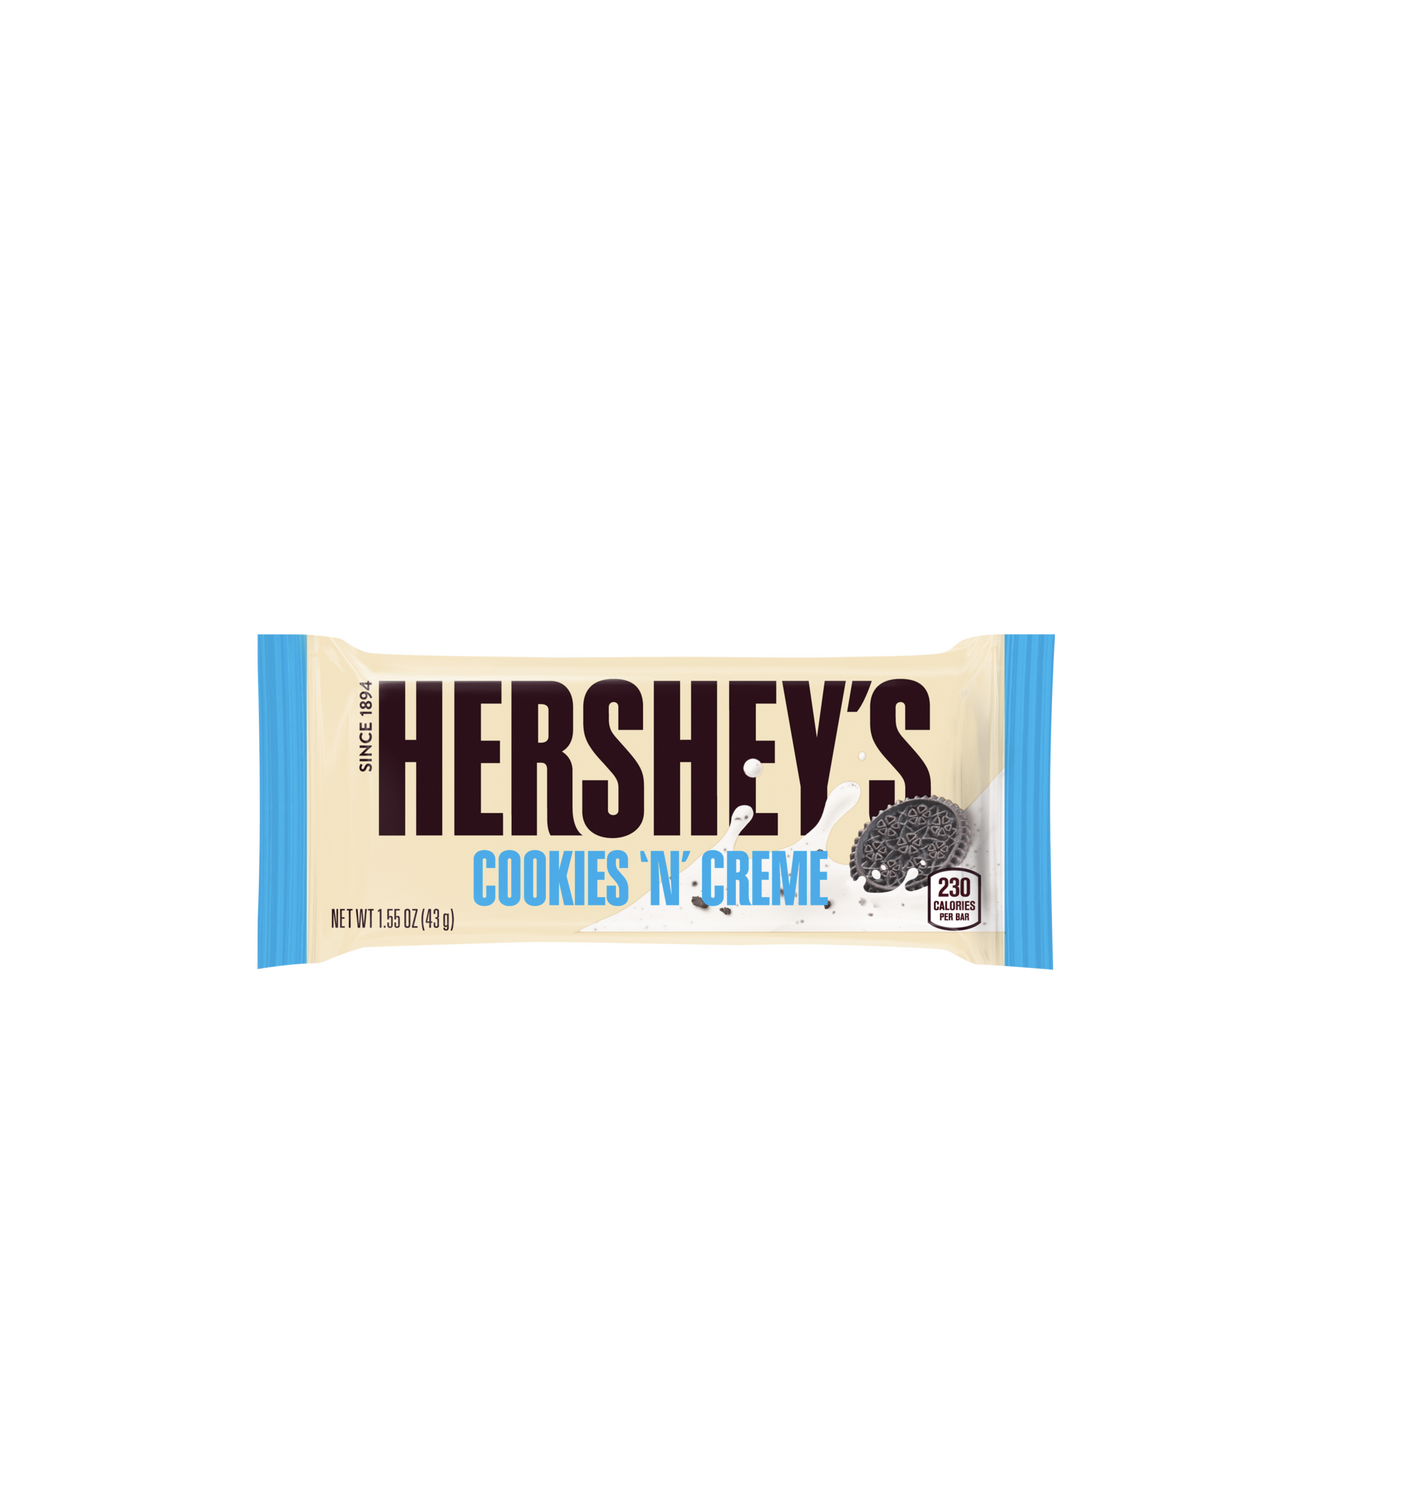 Chocolat - Hershey's Cookies'n'creme candy 40g